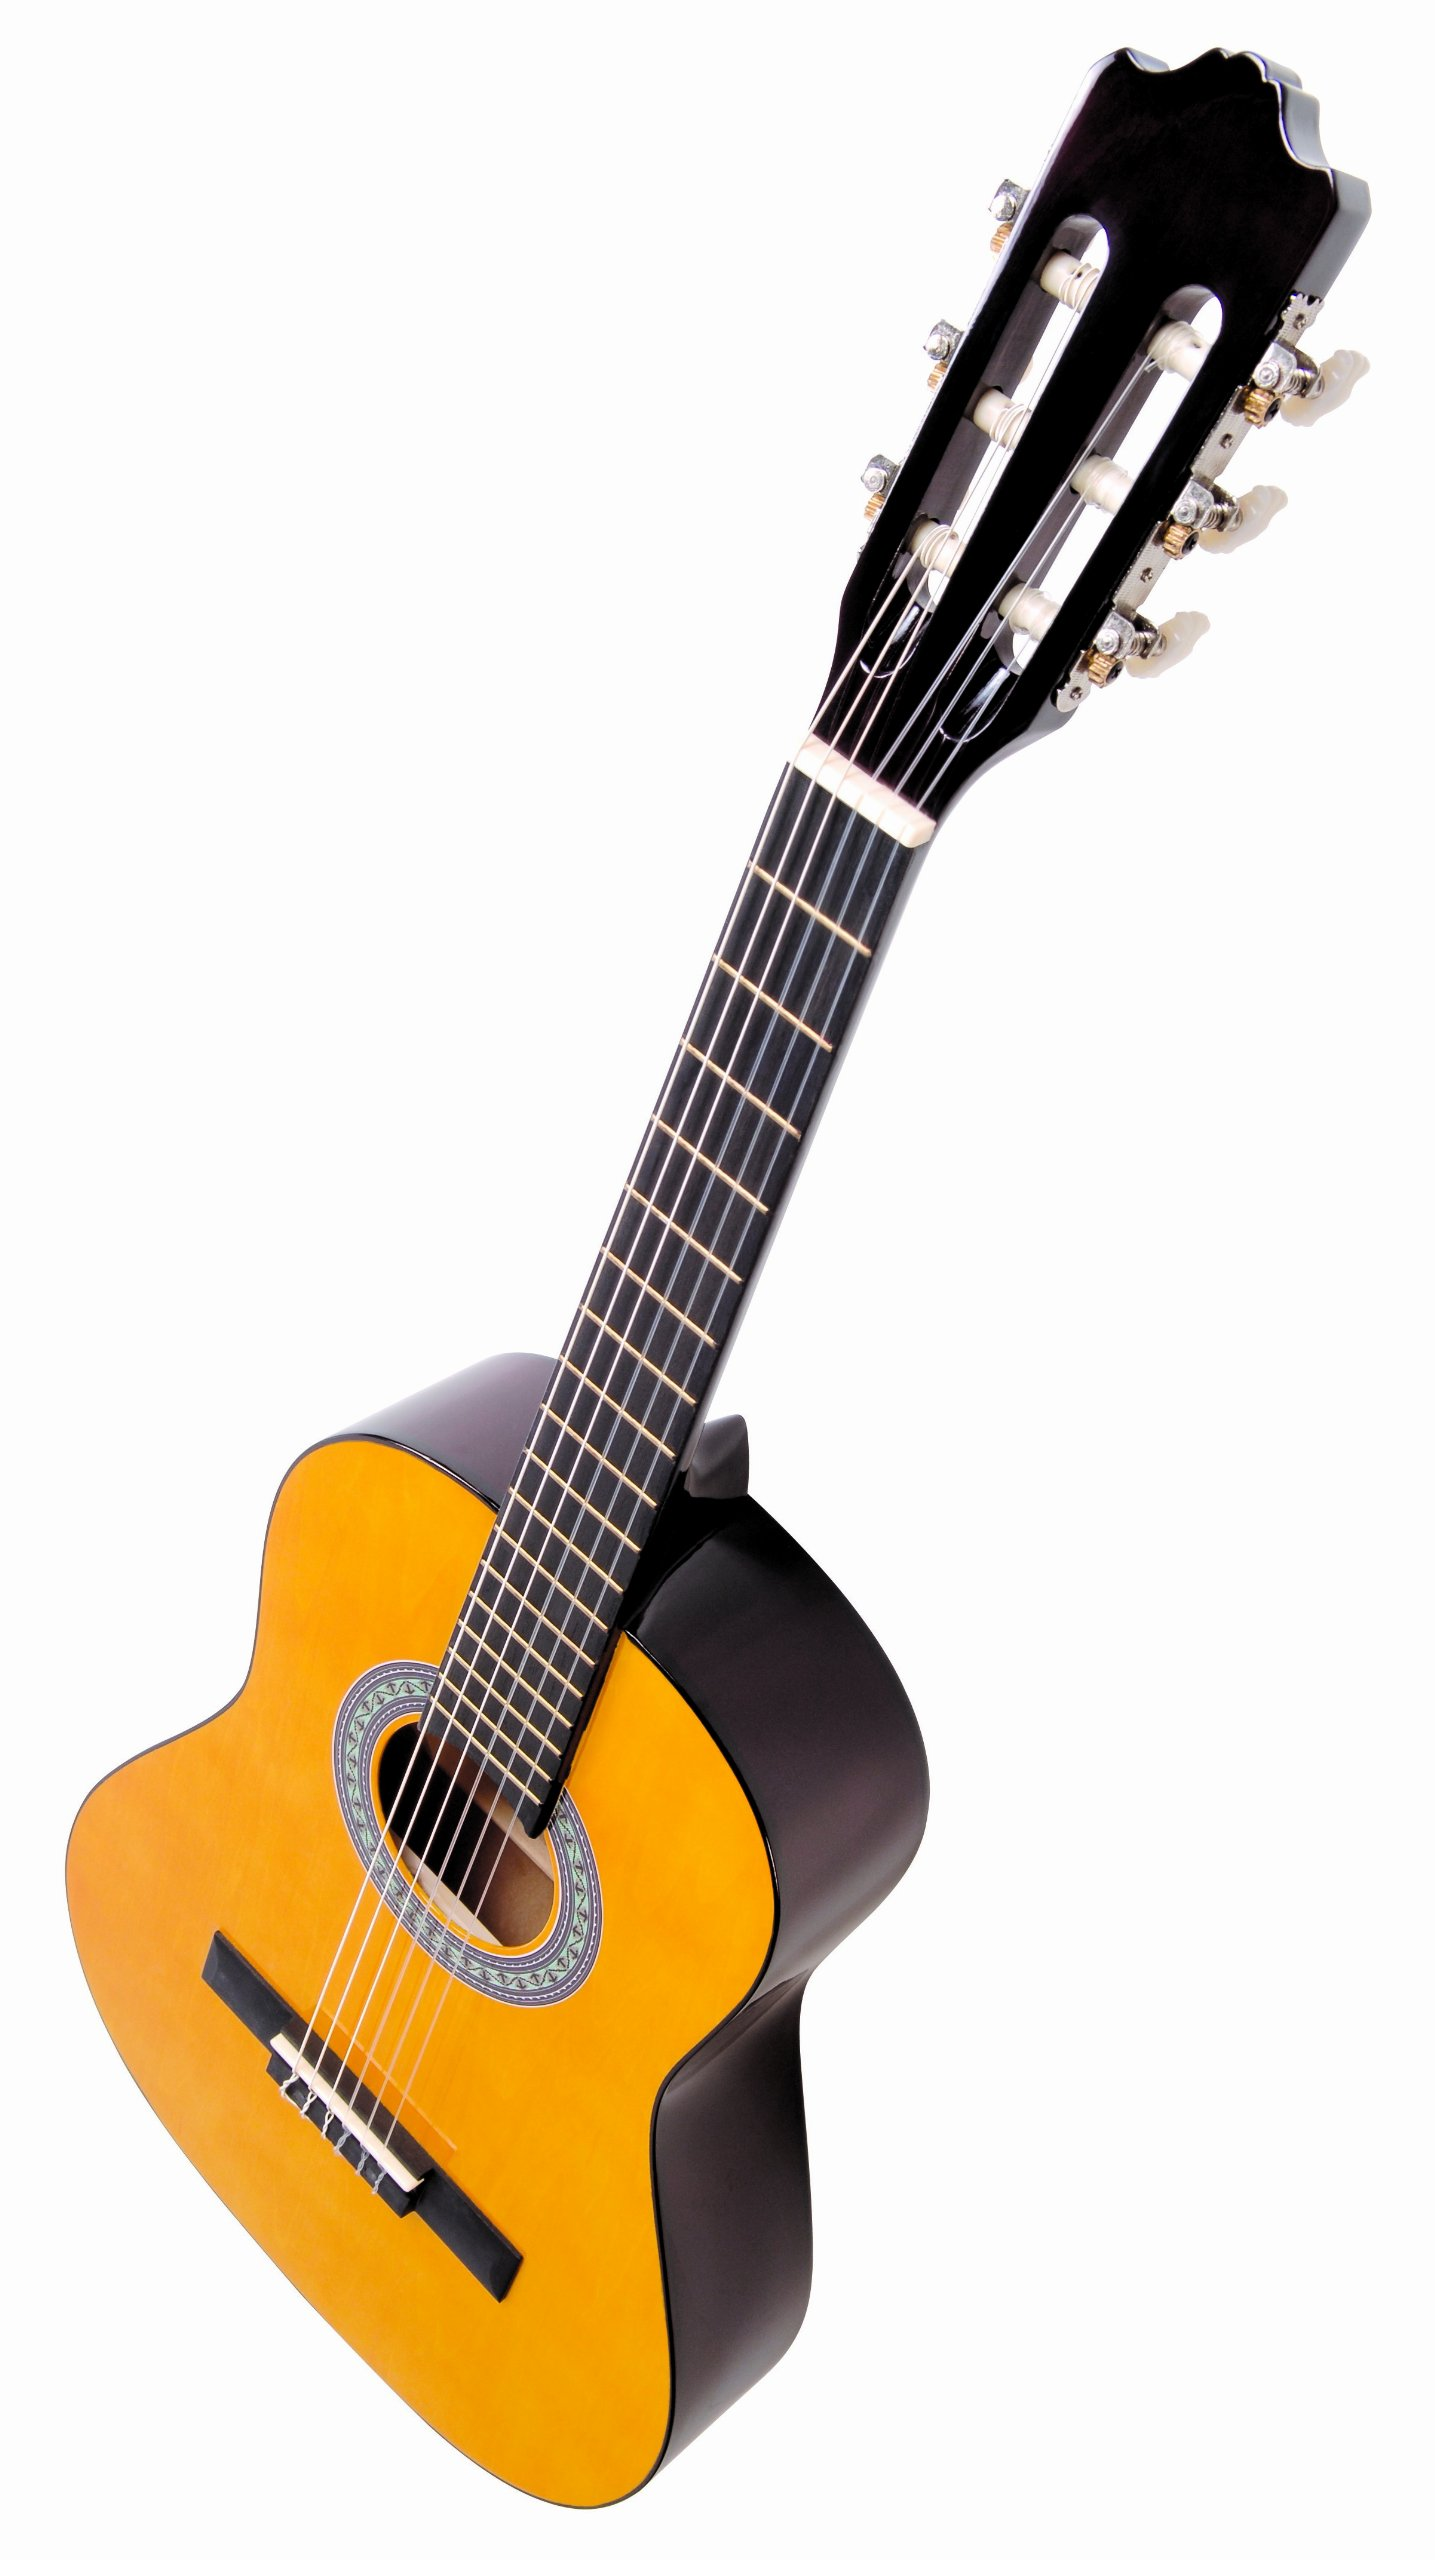 encore enc12oft natural wood half size classic guitar outfit ebay. Black Bedroom Furniture Sets. Home Design Ideas